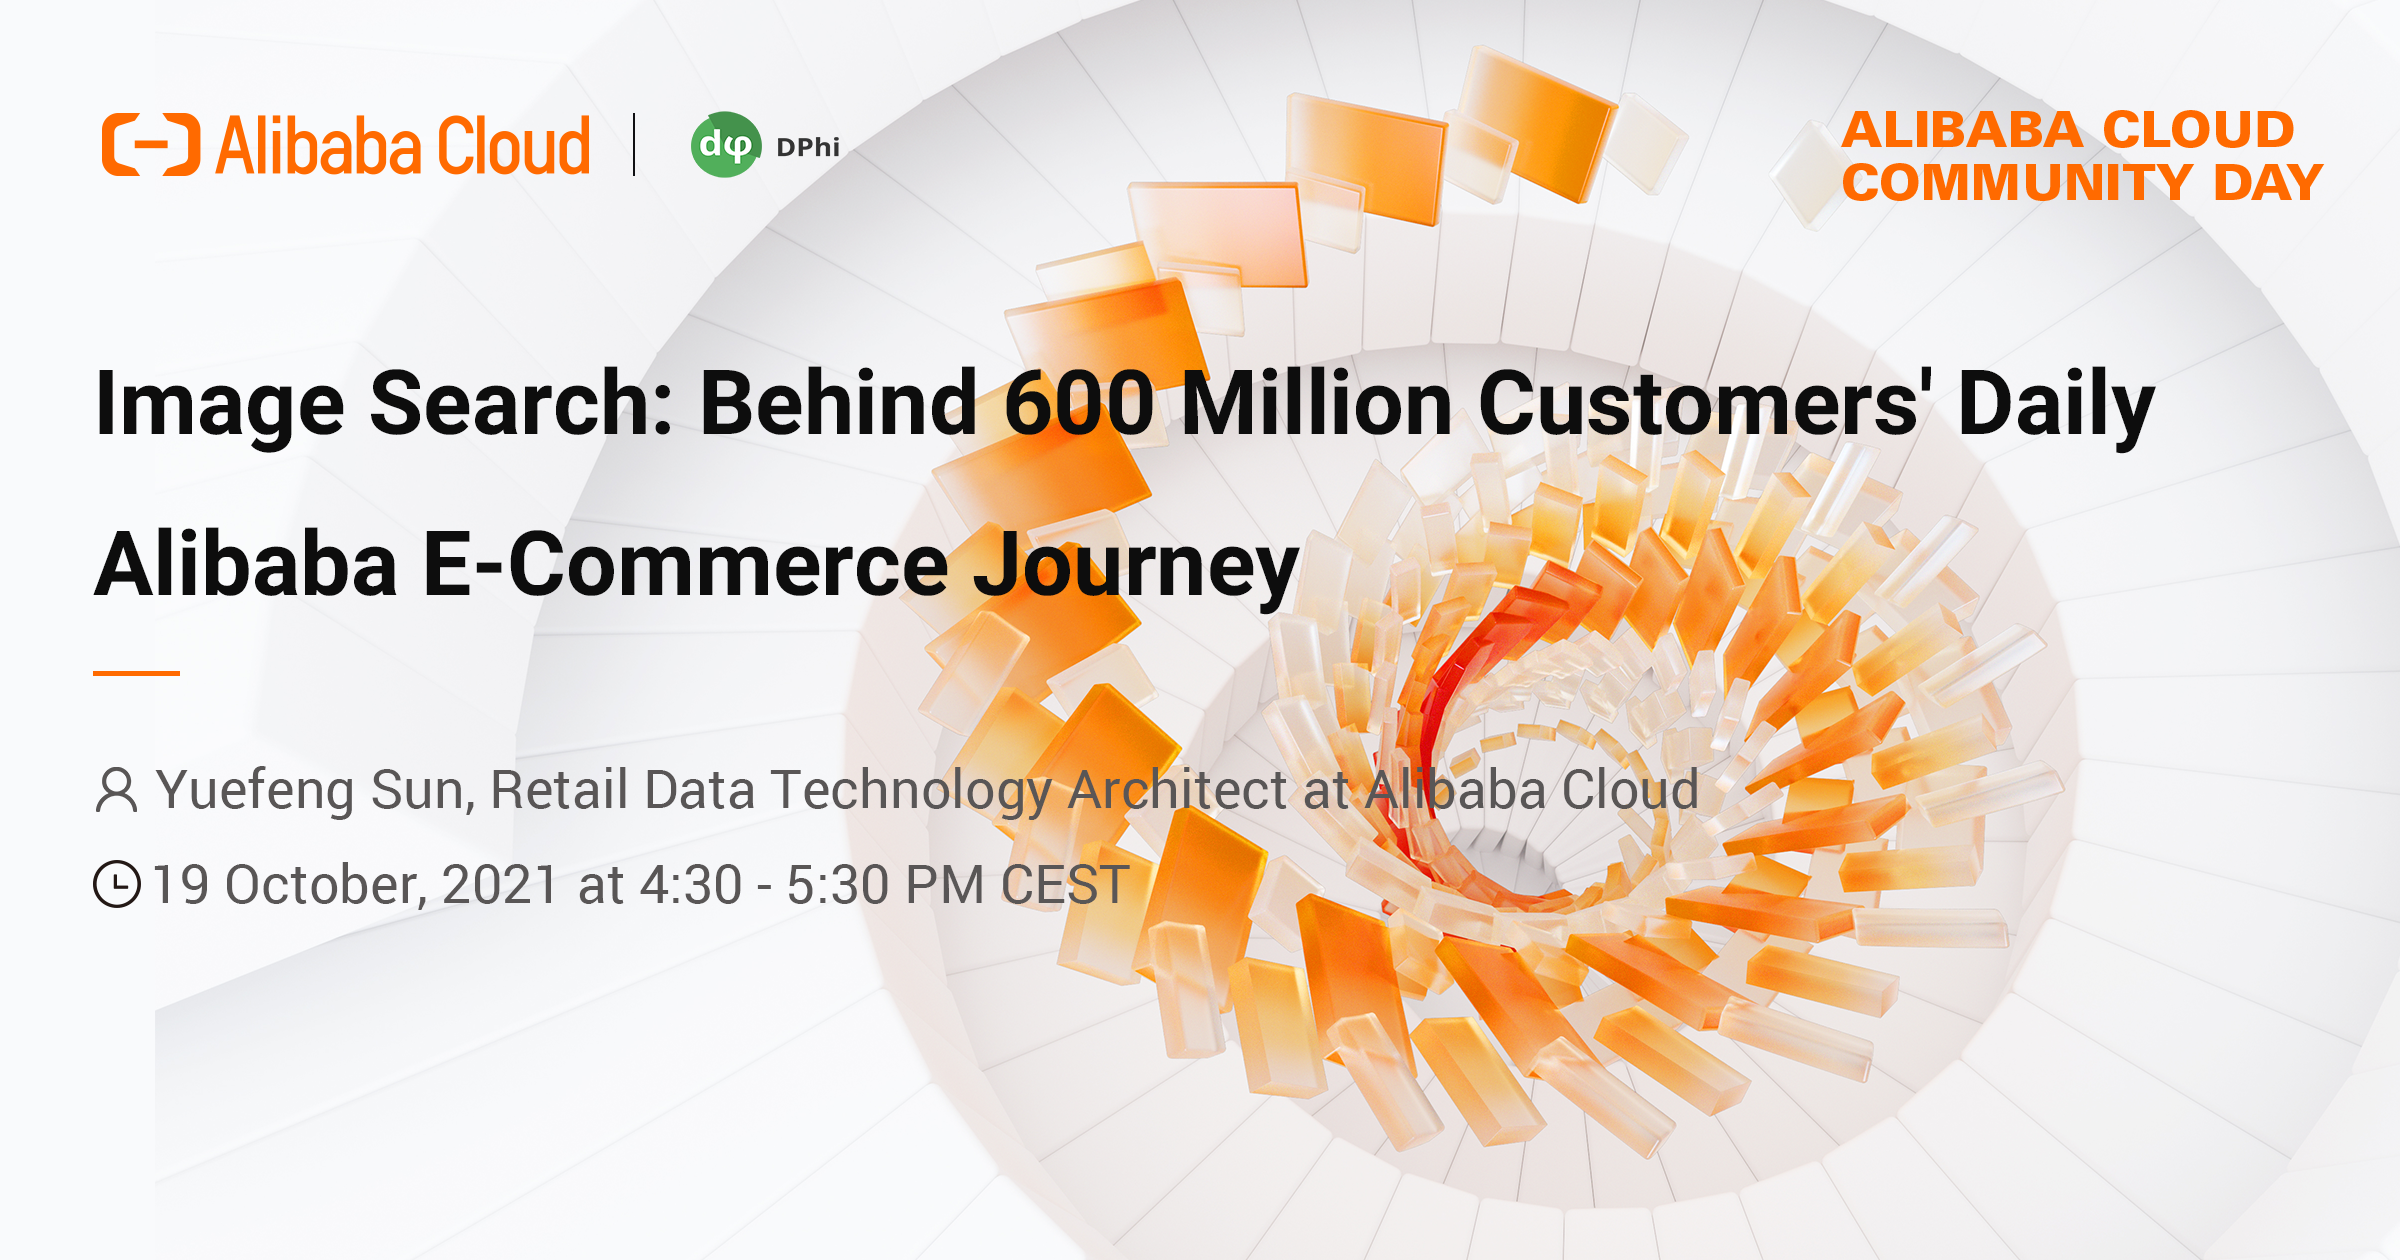 Alibaba Cloud Community Day: Image Search: Behind 600 Million Customers' Alibaba E-Commerce Journey